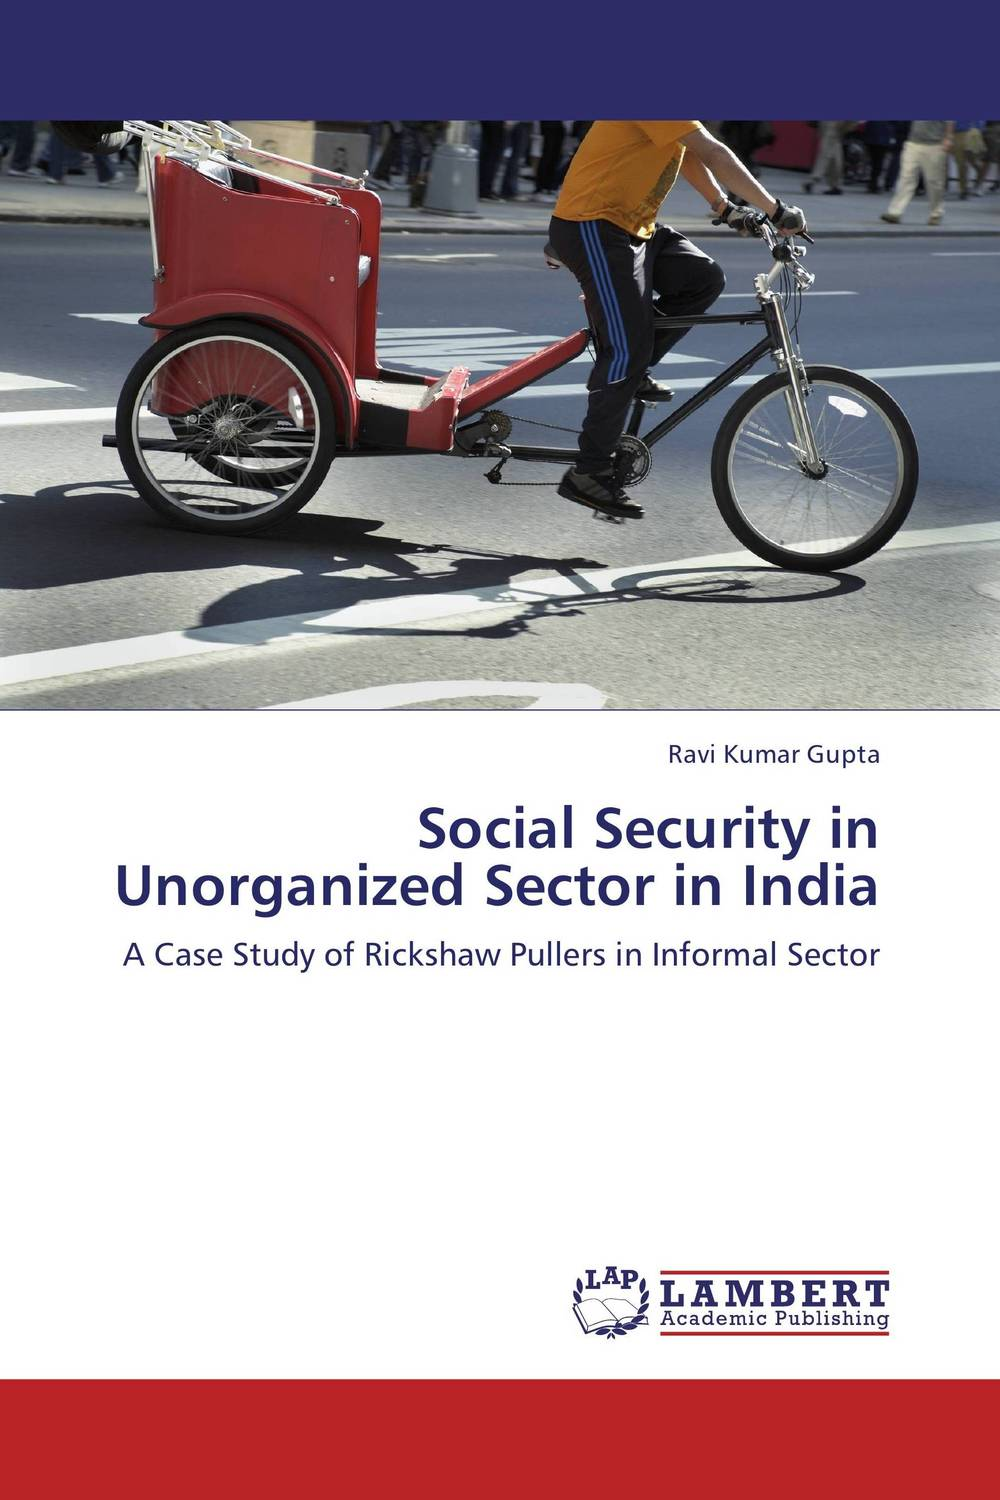 Social Security in Unorganized Sector in India стандарт пшено в варочных пакетах 5 шт по 80 г